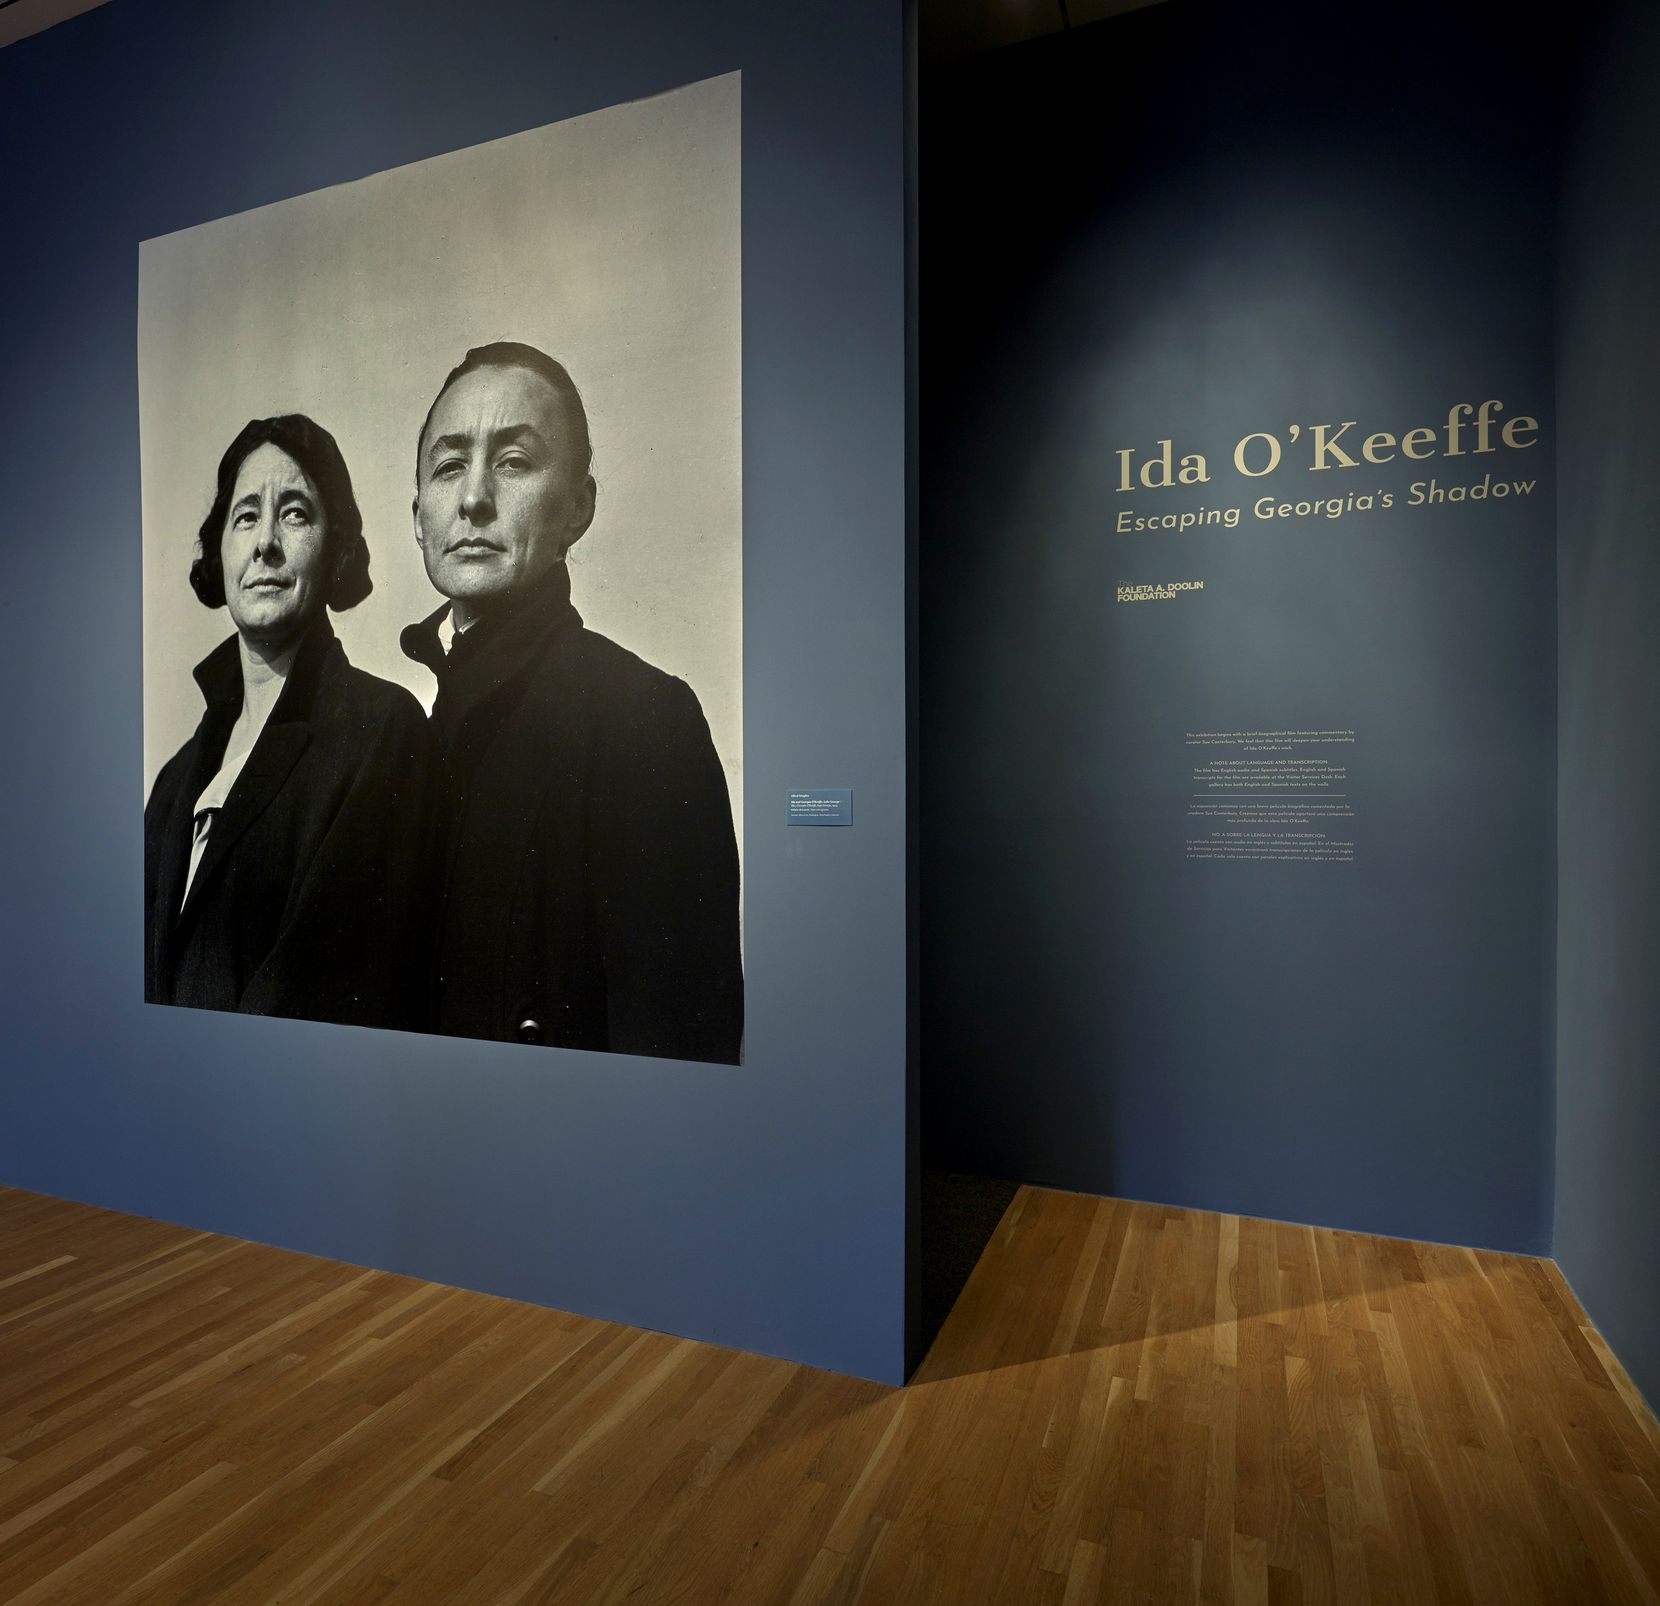 Kaleta Doolin's foundation provided crucial funding to bring a groundbreaking retrospective of Ida O'Keeffe, Georgia O'Keeffe's often overlooked younger sister, to the Dallas Museum of Art in 2018 and 2019.